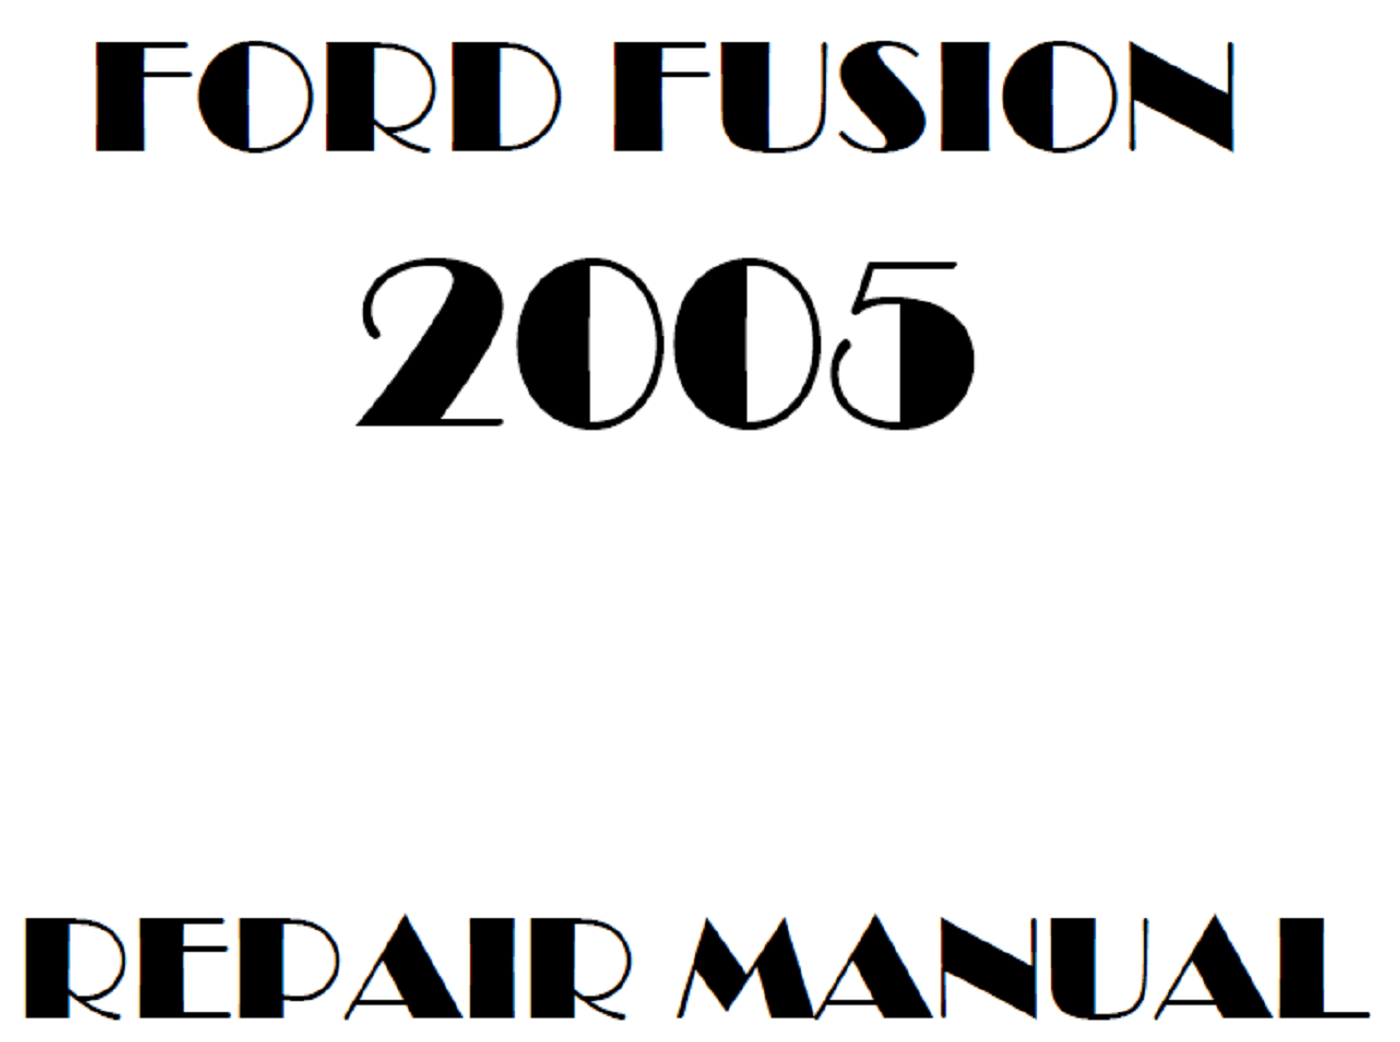 2005 Ford Fusion repair manual